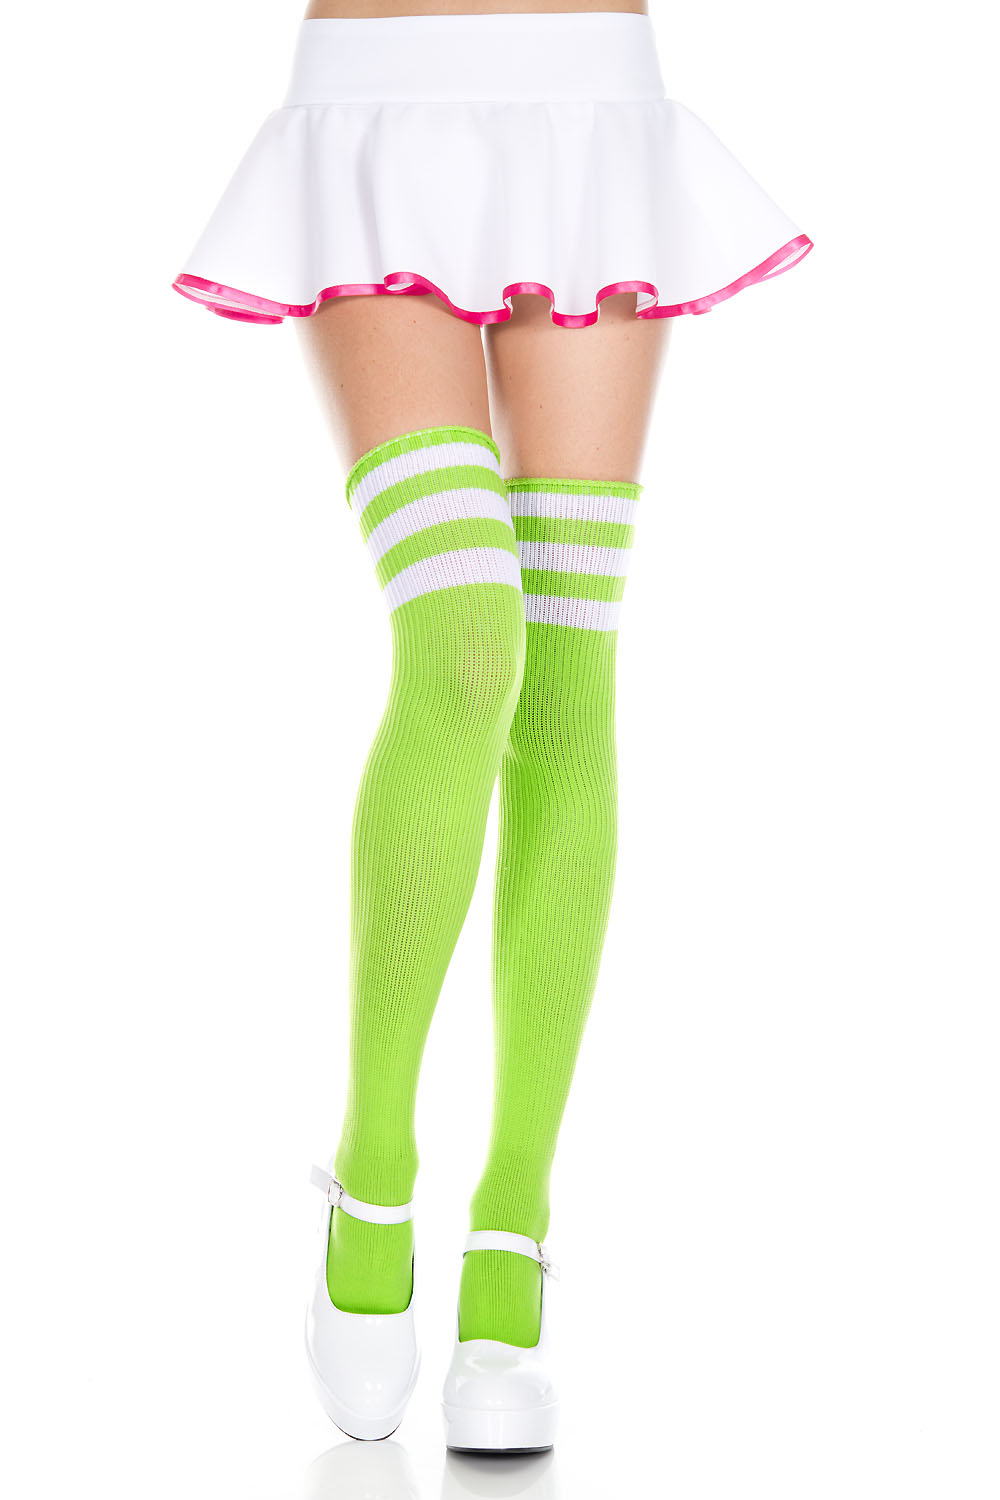 Athlete acrylic thigh hi with striped top 4245-LIME GREEN/WHITE